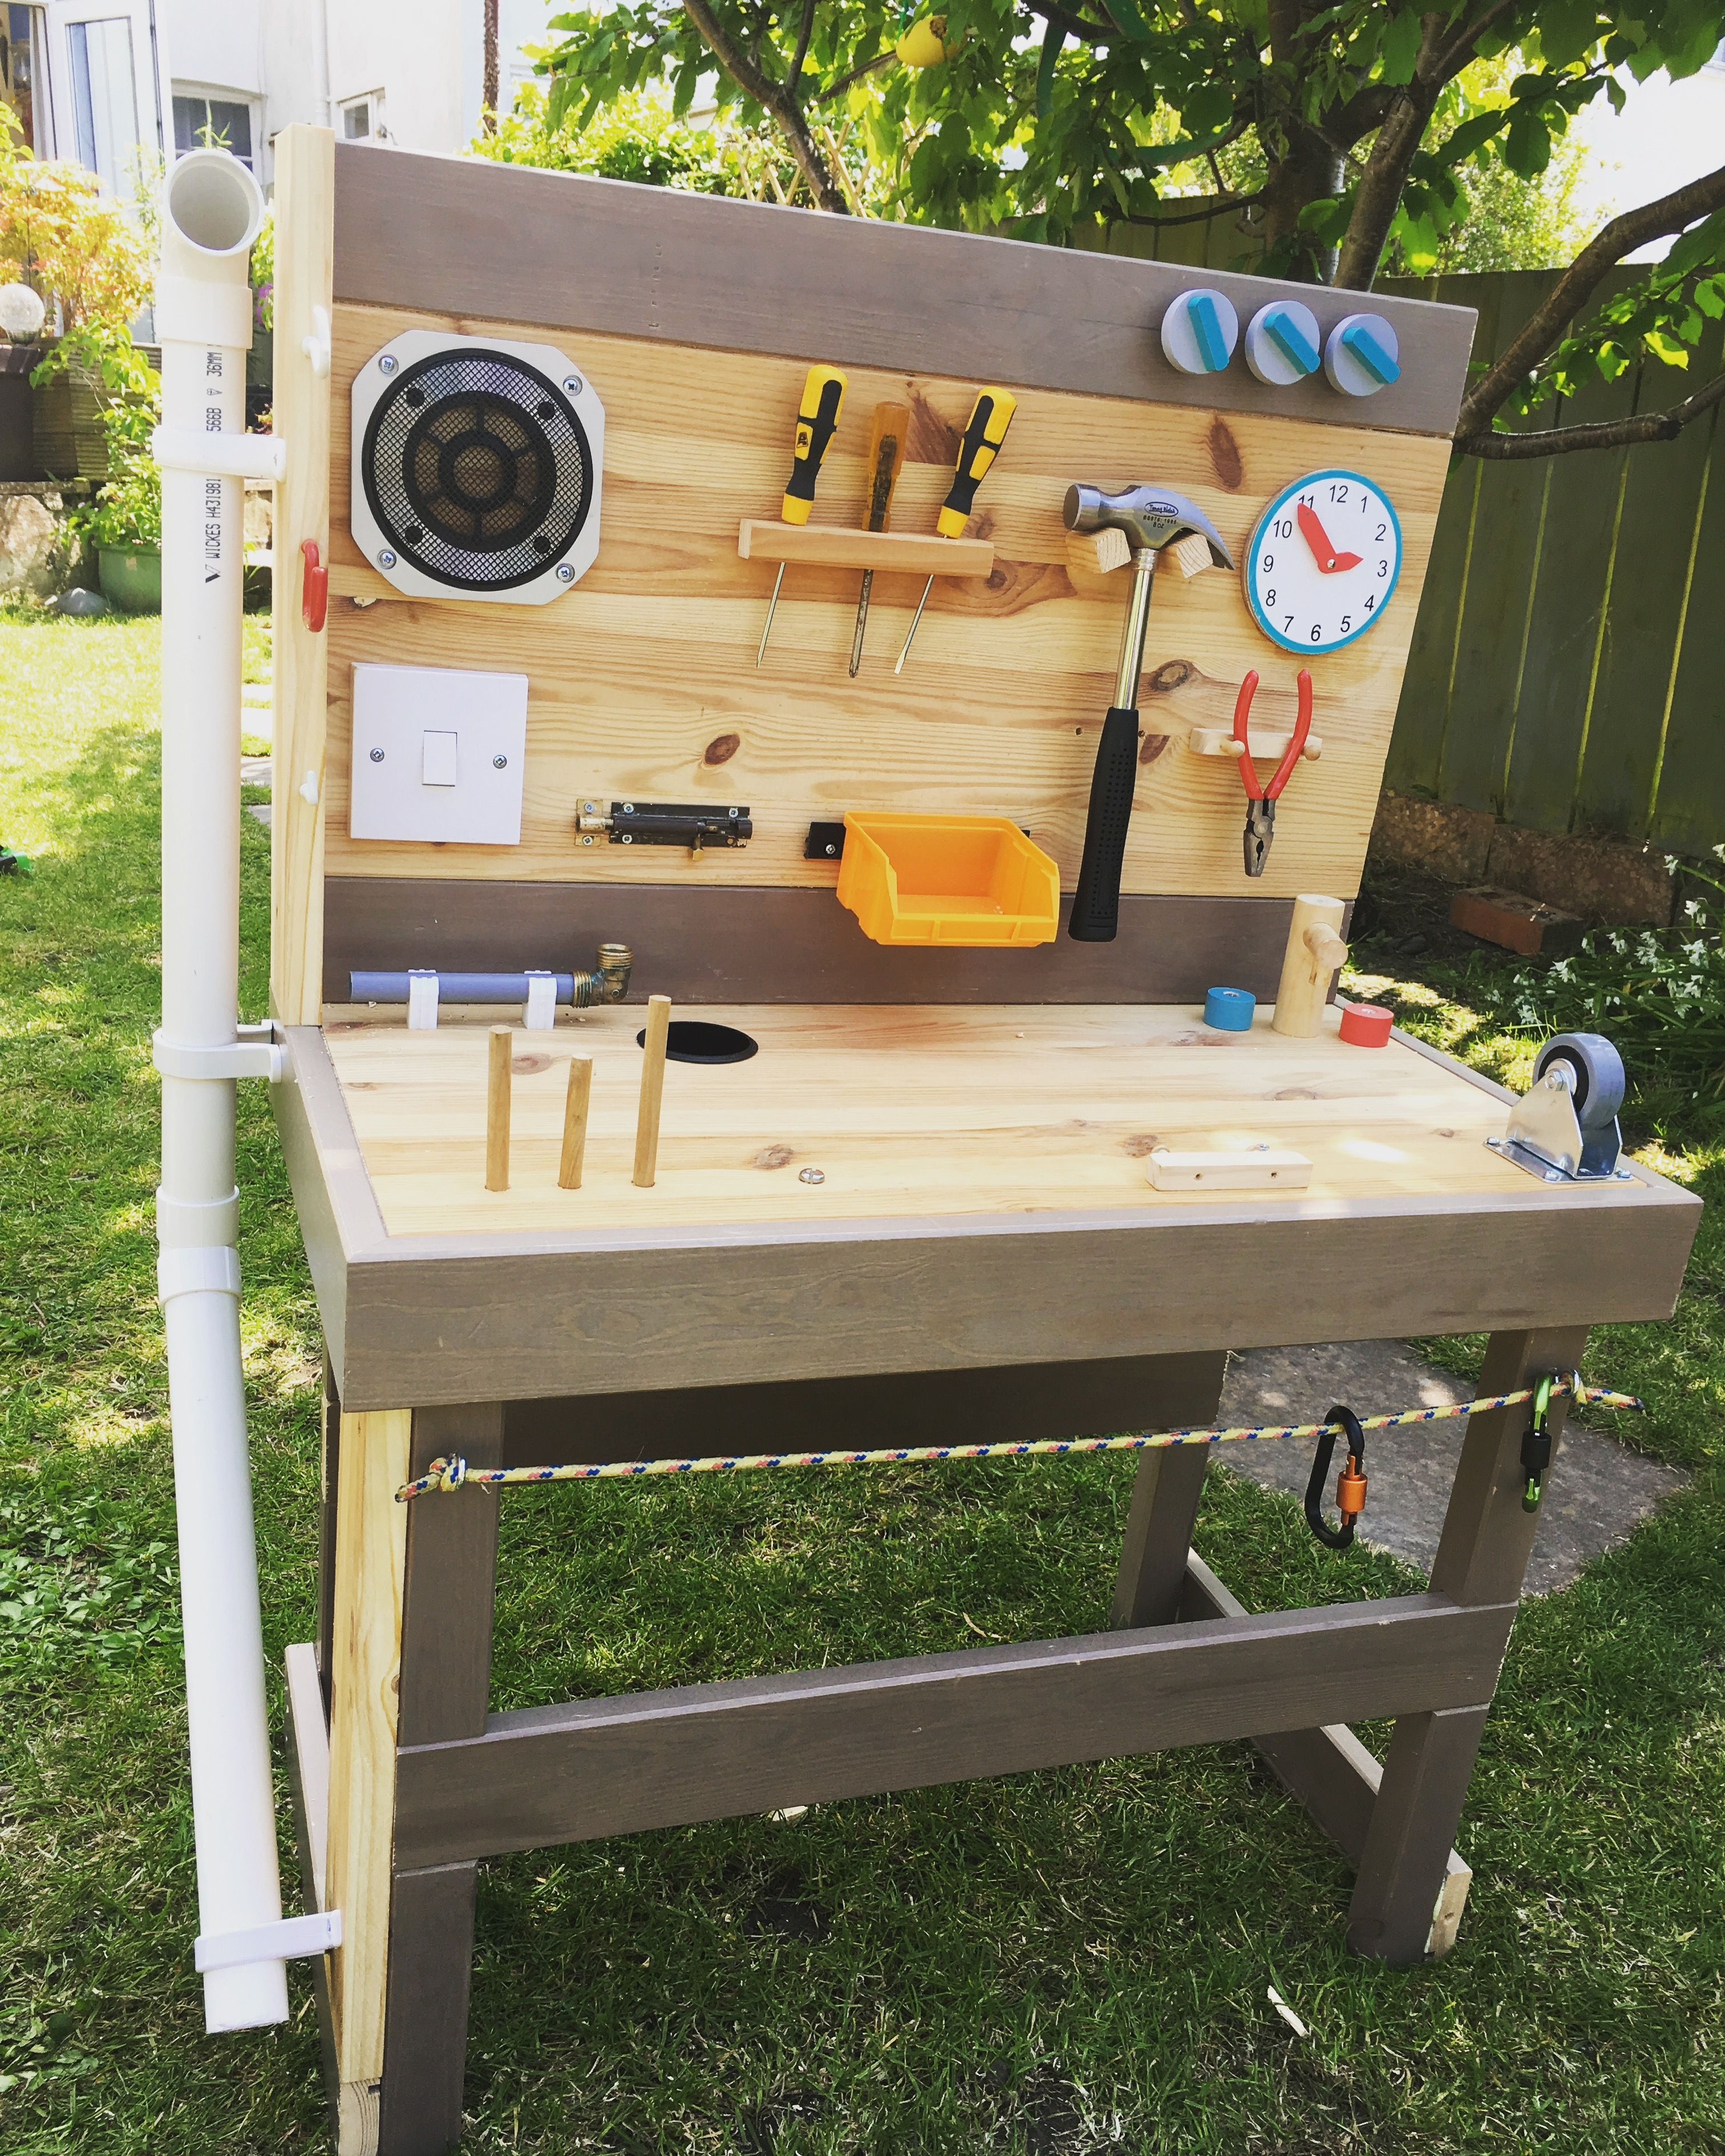 Cleave Toddler Workbench Sensory Table Toddler Workbench Kids Workbench Kids Tool Bench